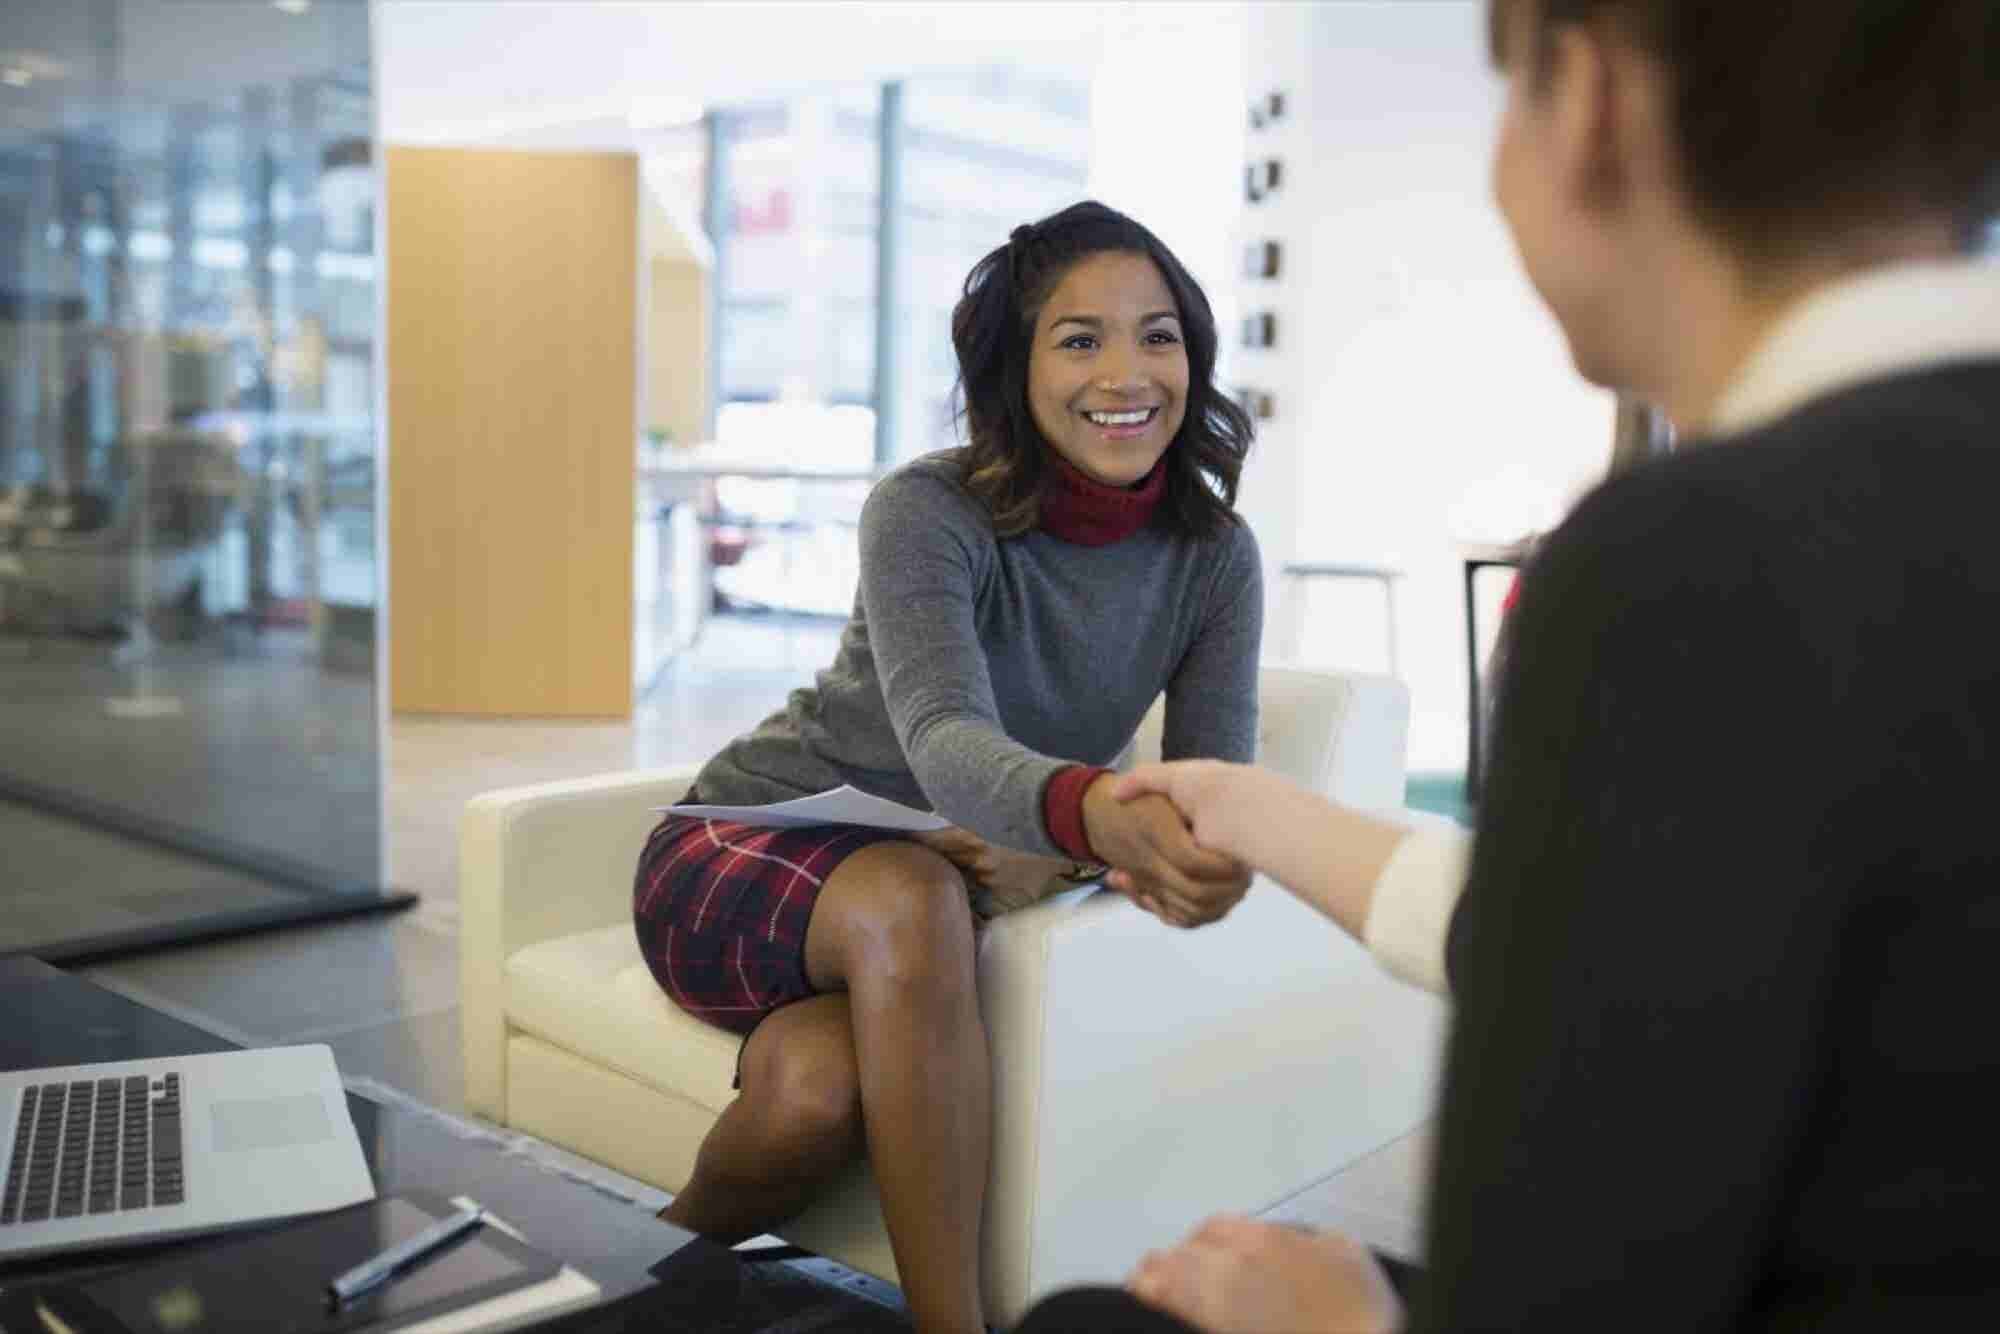 5 Things You Need For A Successful Second Interview